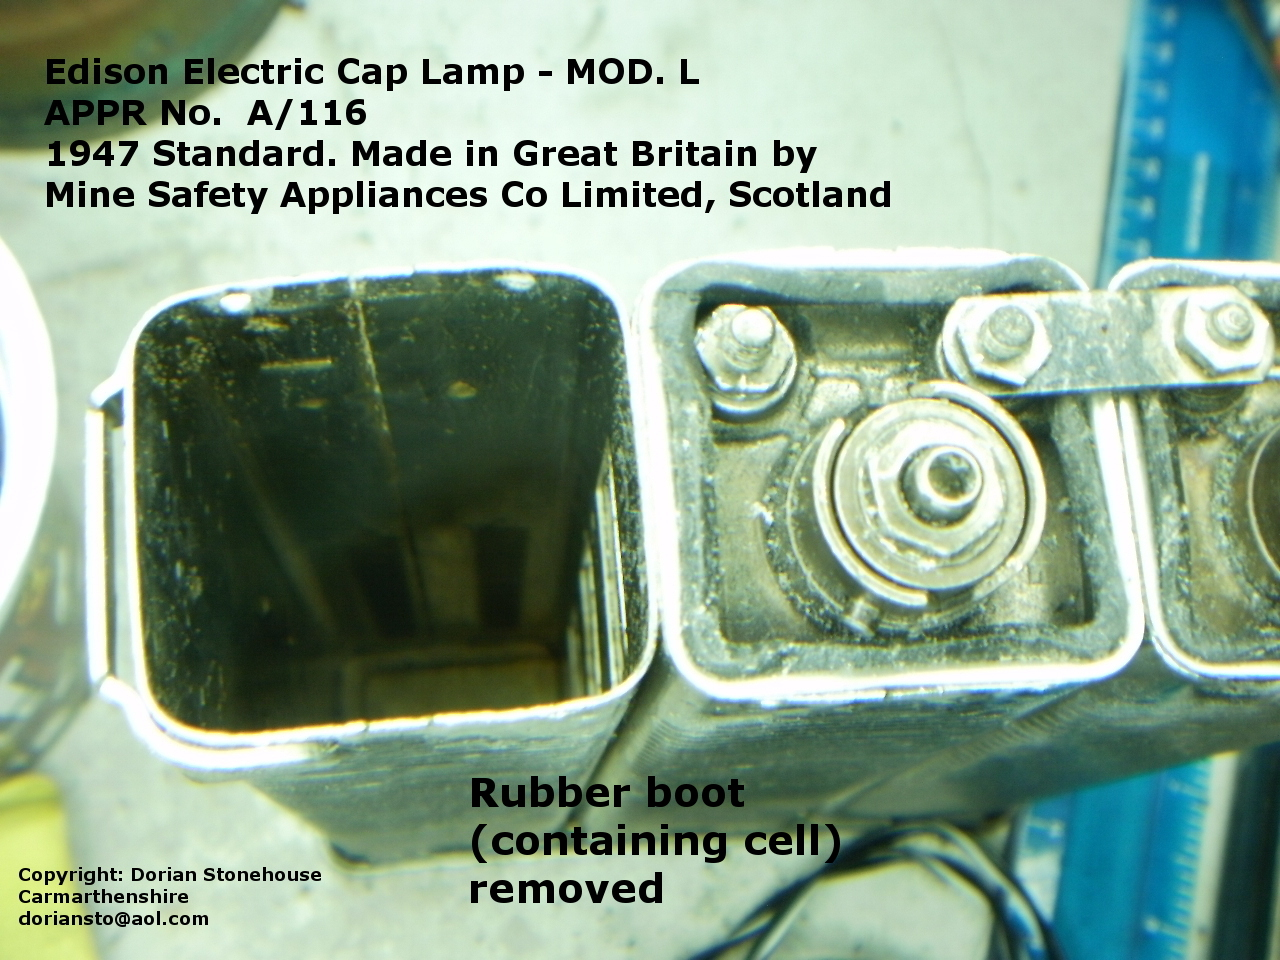 The rubber boot removed from the metal battery body